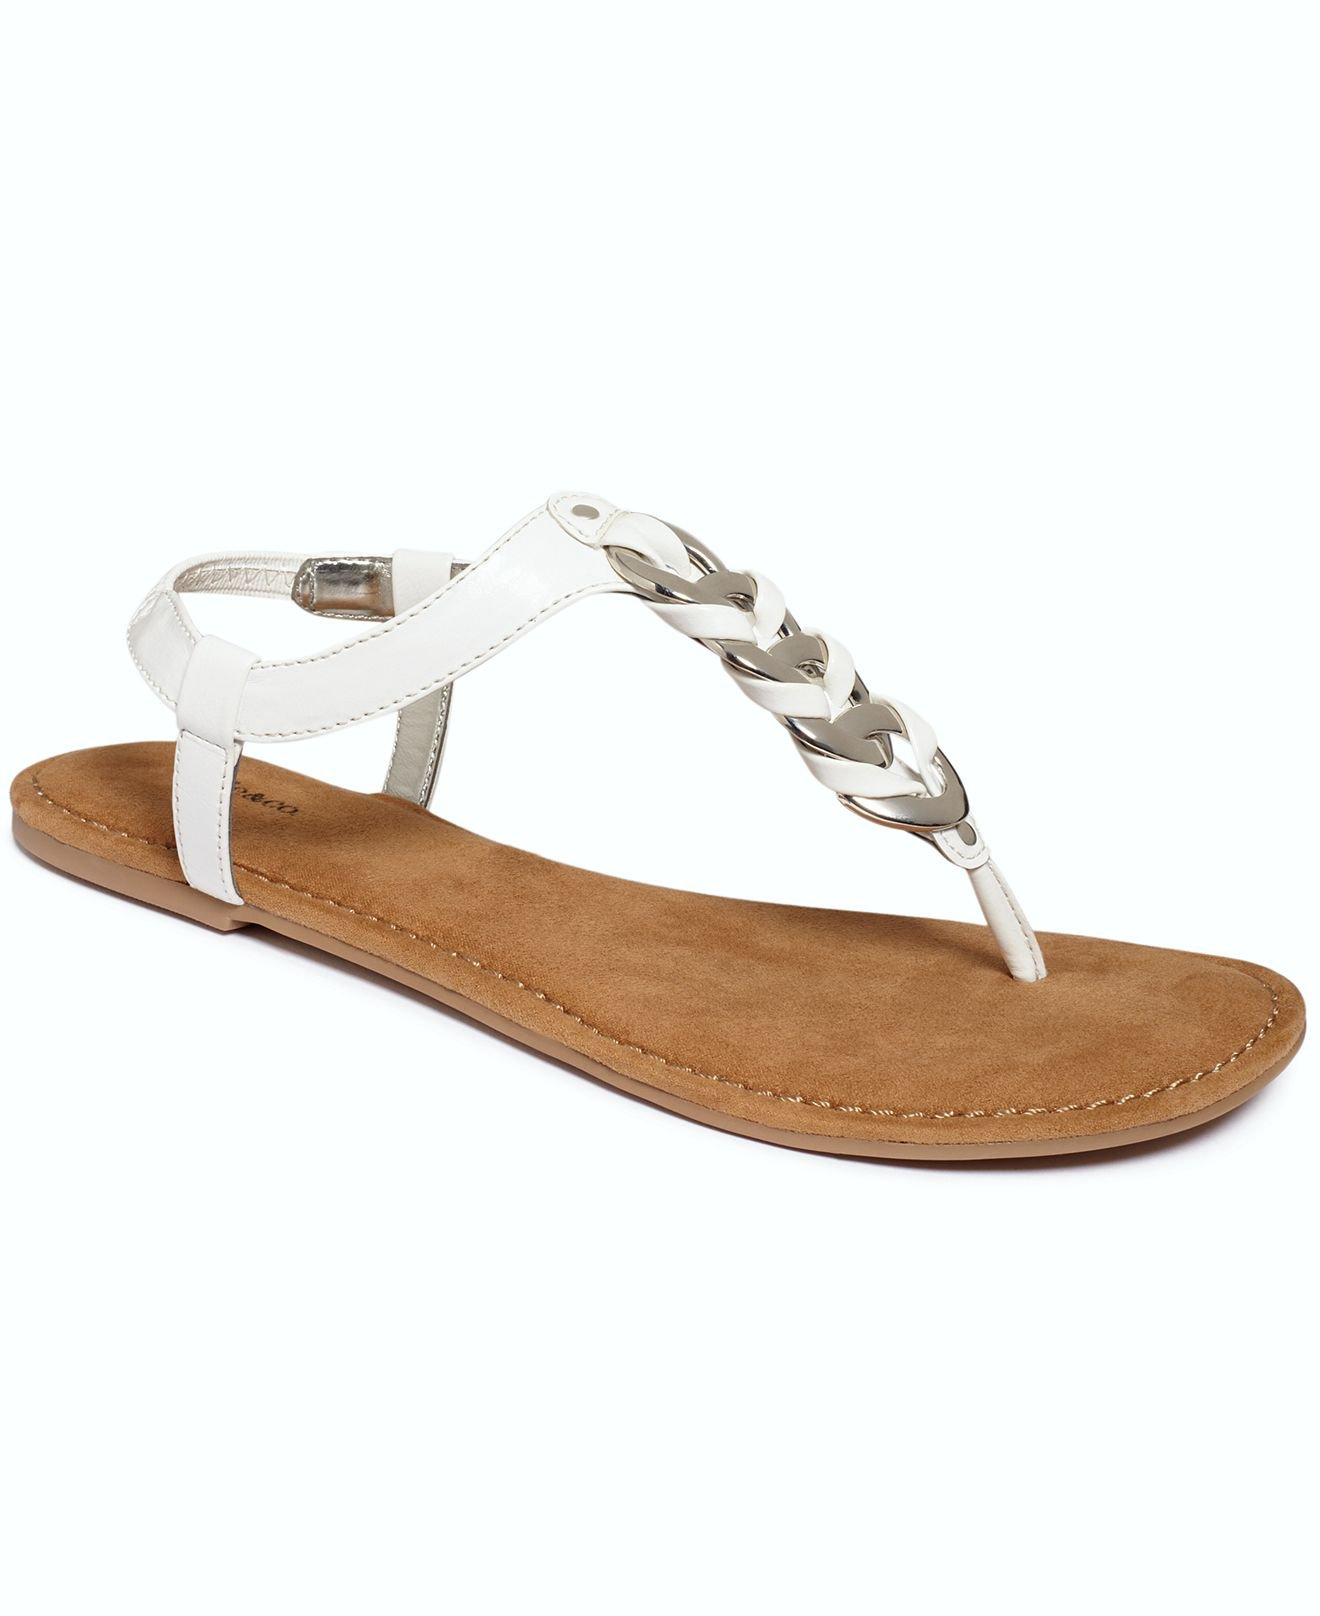 Shoes, Jinger Flat Thong Sandals  All Women39;s Shoes  Shoes  Macy